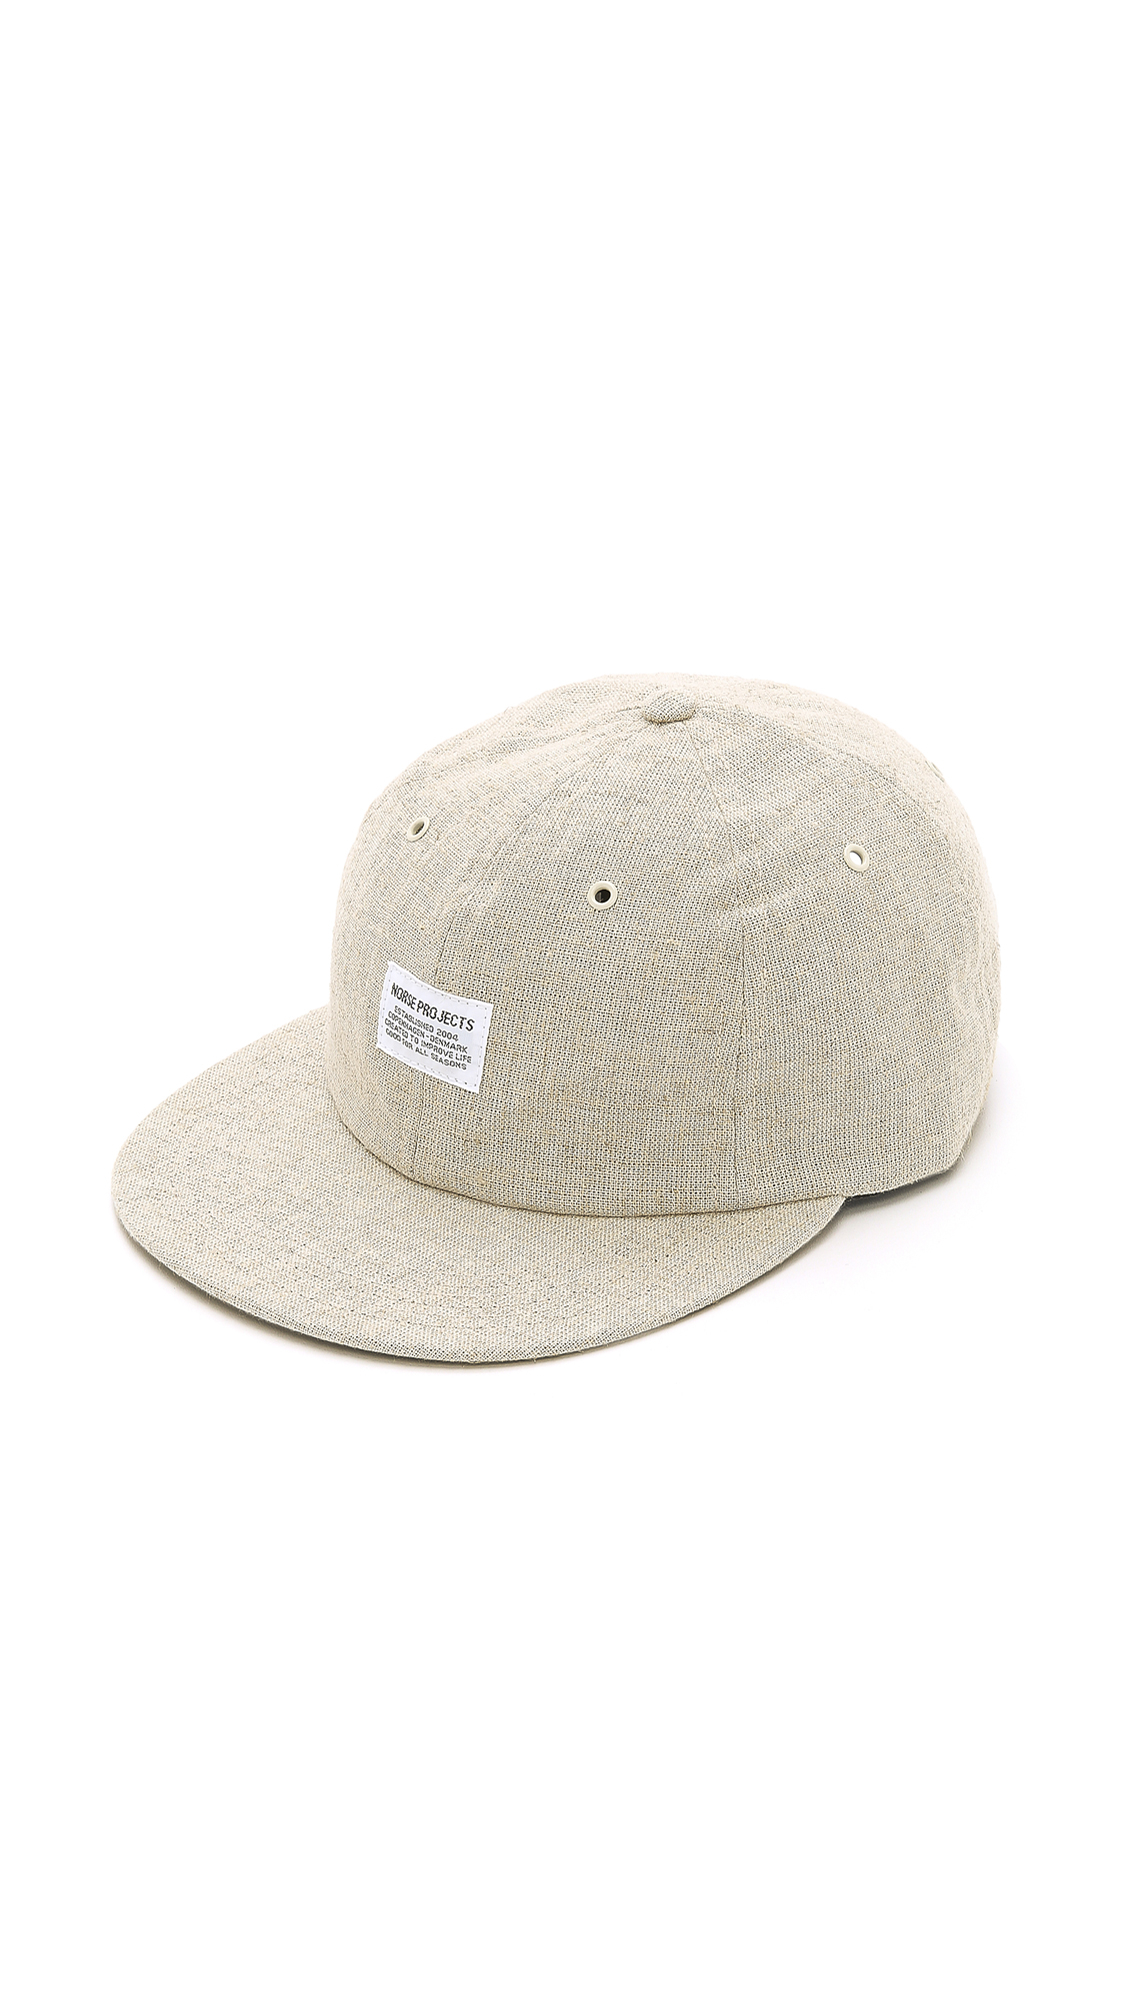 2ecf3a9c4b3 Norse Projects Linen 6 Panel Cap in Natural for Men - Lyst